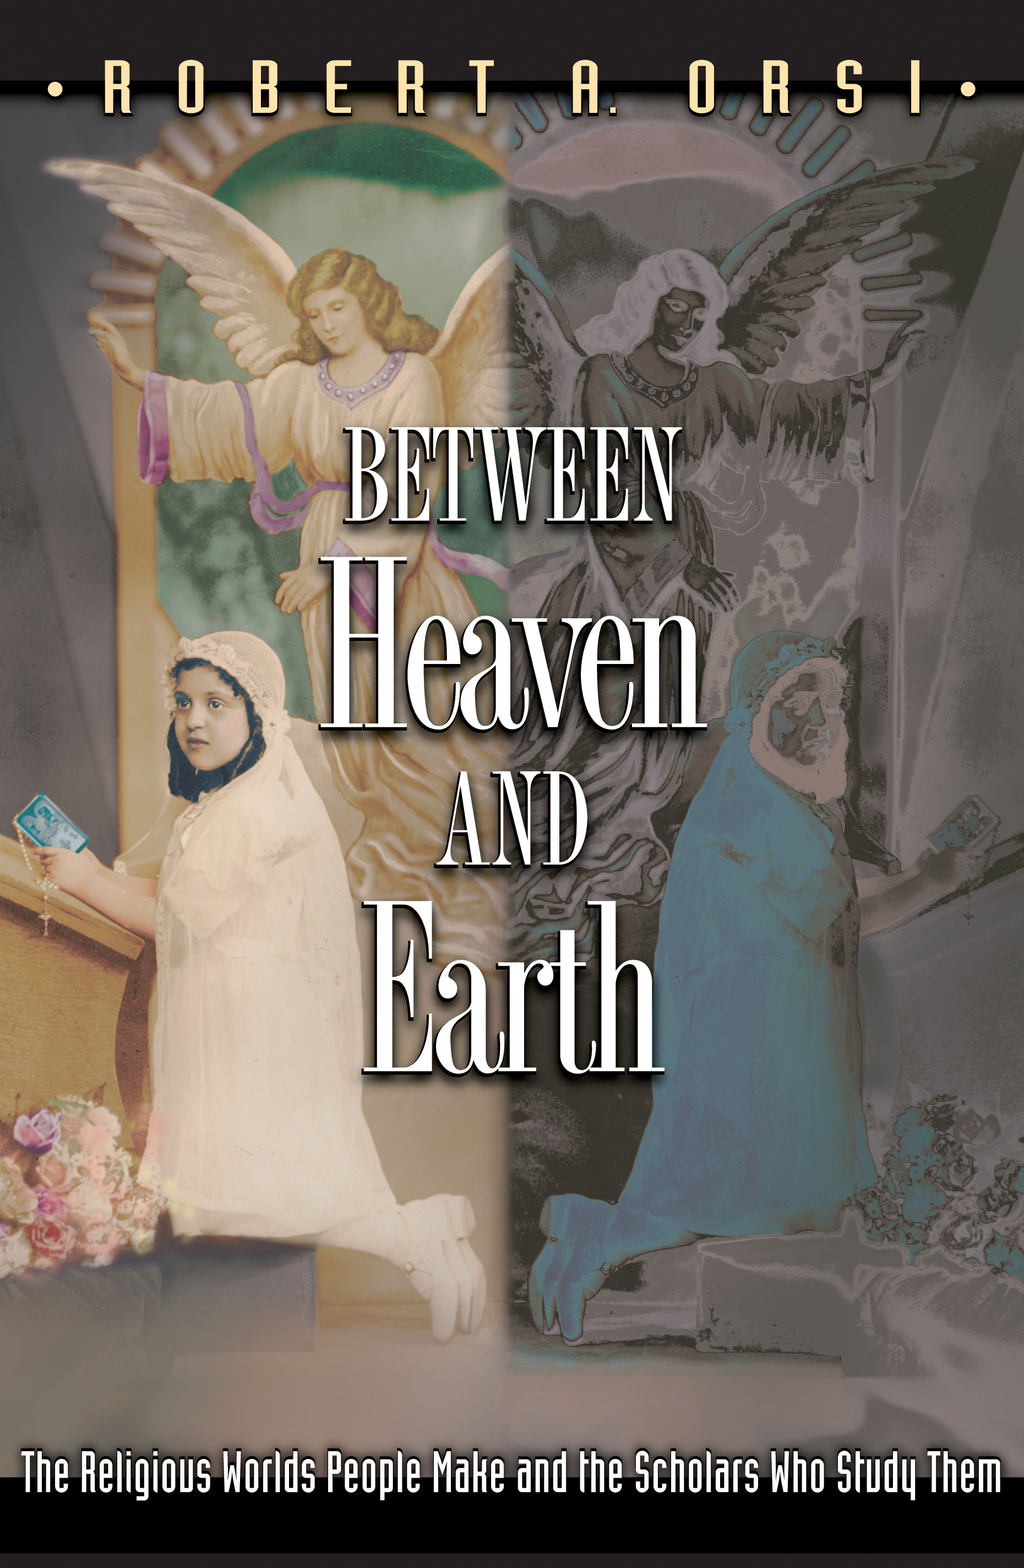 Between Heaven and Earth The Religious Worlds People Make and the Scholars Who Study Them